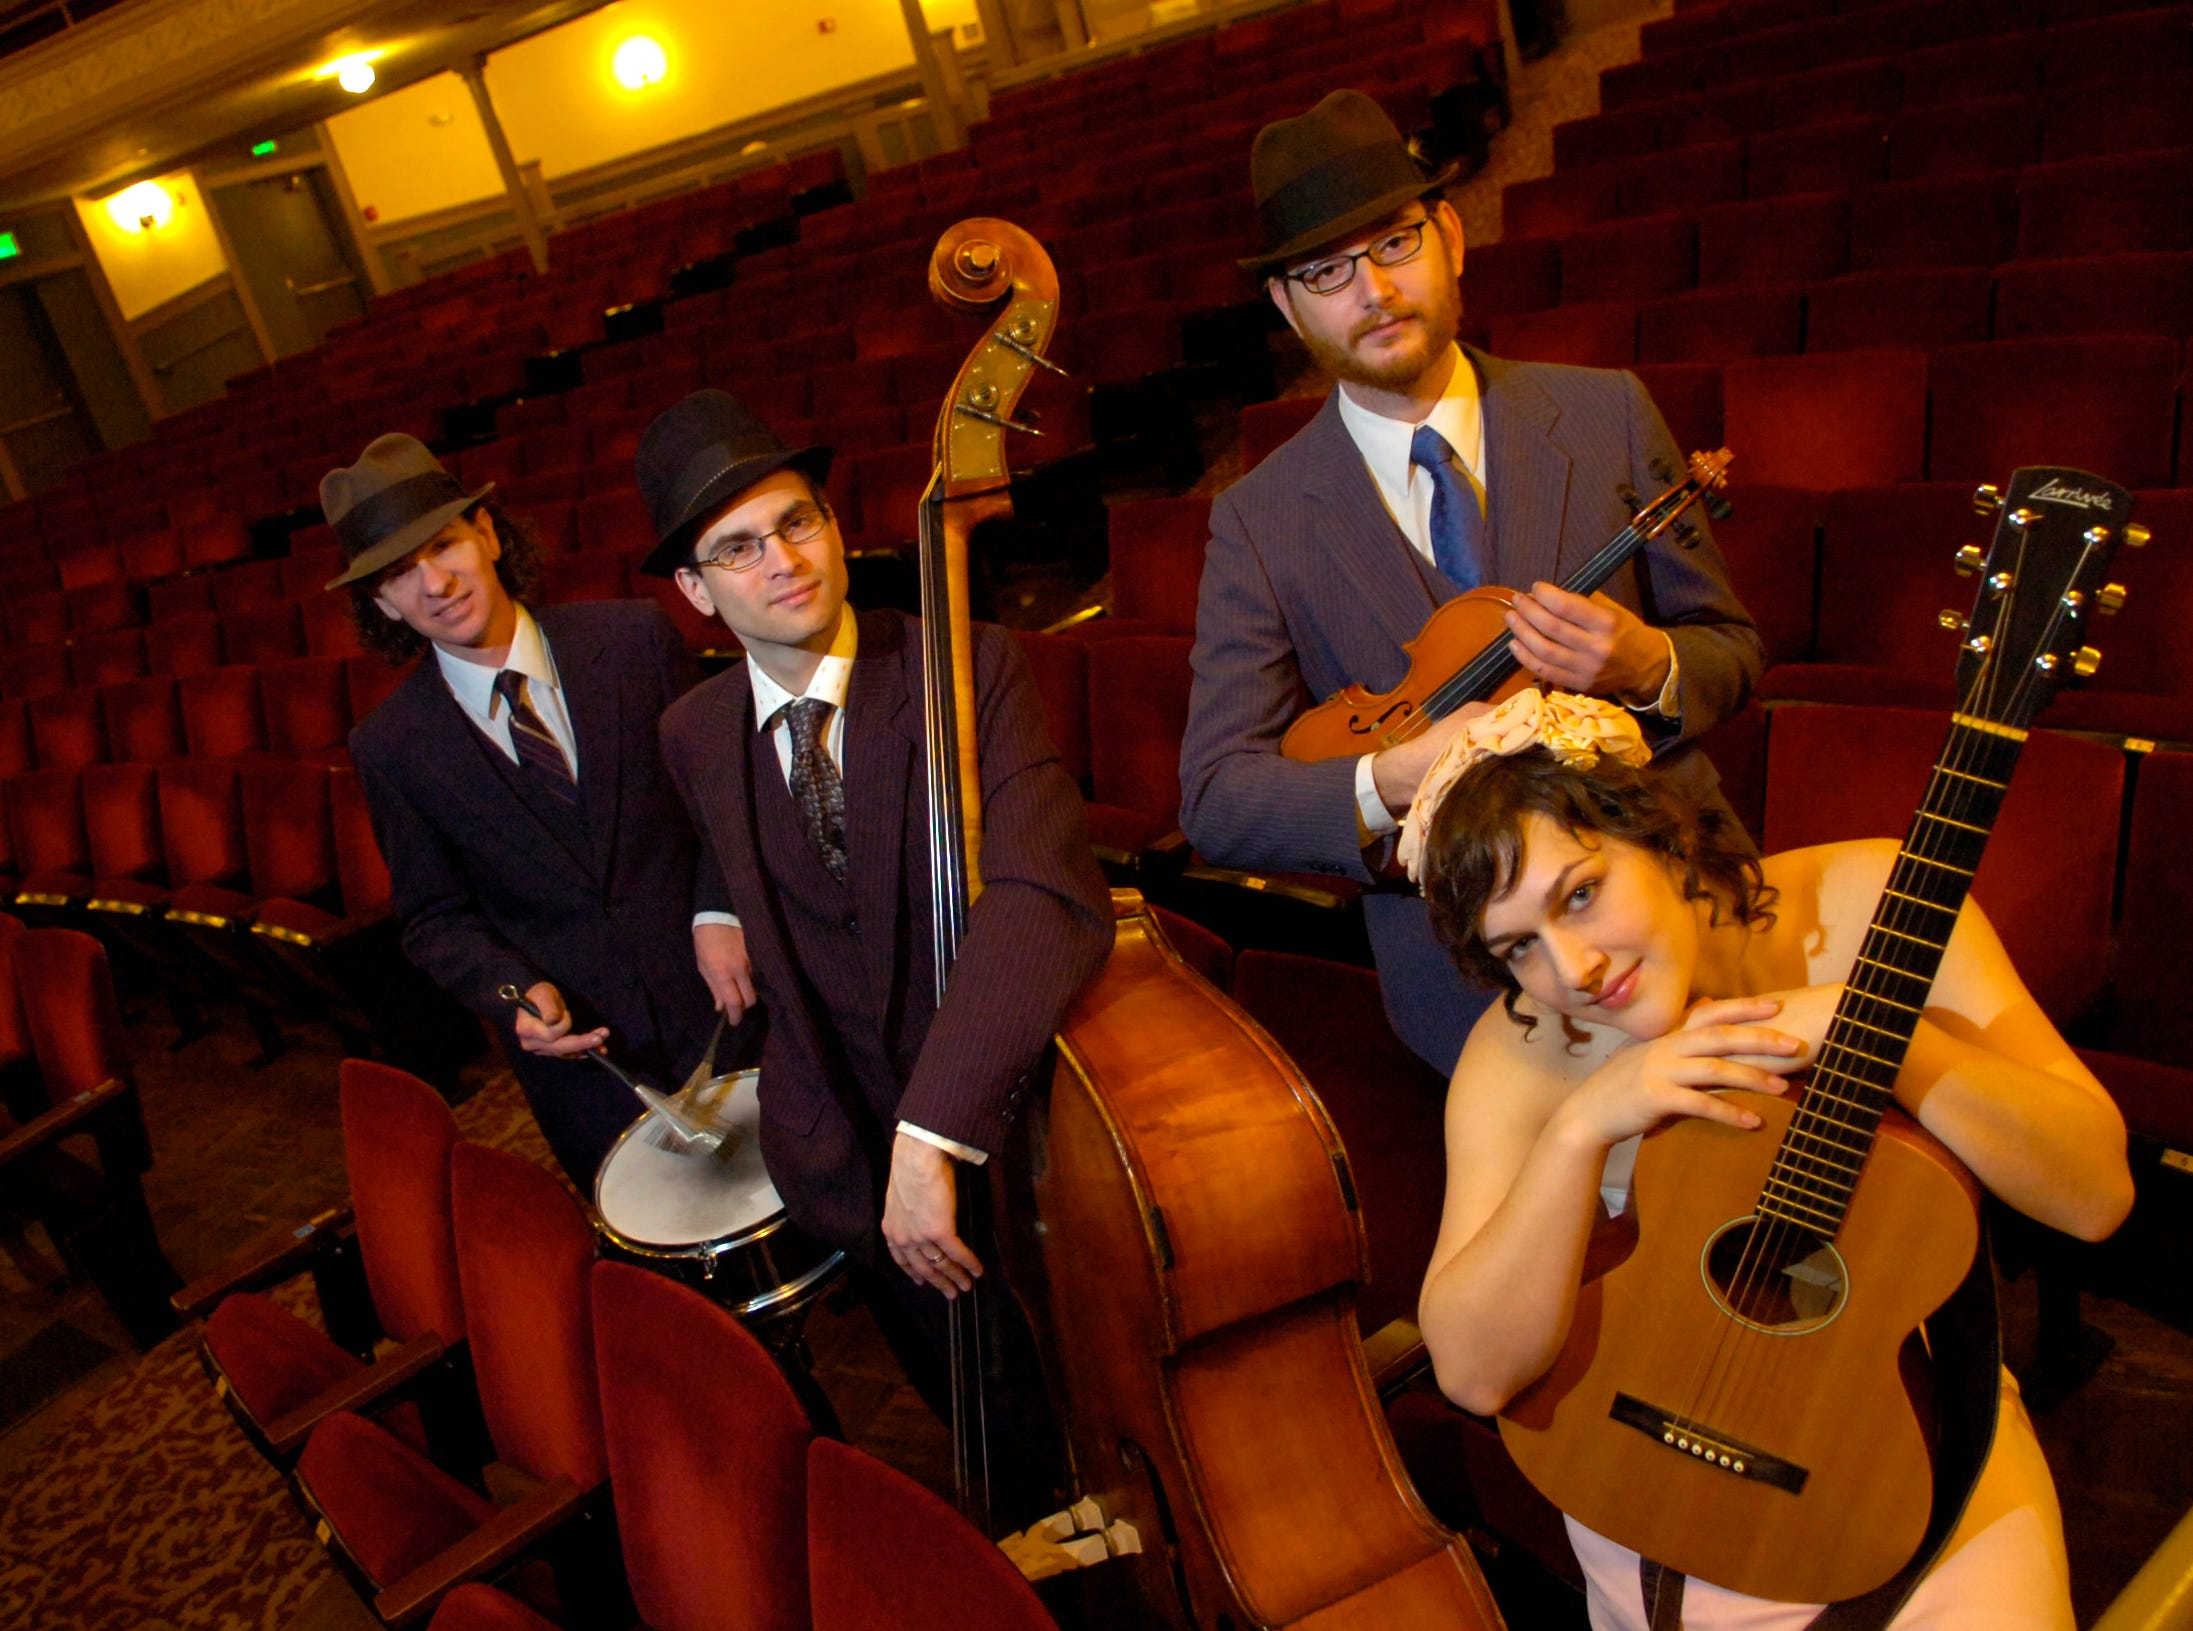 Christabel and the Jons, shown here Thursday at the Bijou Theatre, are one of Knoxville's up and coming acts combining the sound of folk music with 1920s and '30s jazz and pop with a little 1940s gypsy jazz and country. Pictured from left are Jon Whitlock (cq), Mischa Goldman, Seth Hopper and Christa DeCicco. Photo taken on 2/1/2007.